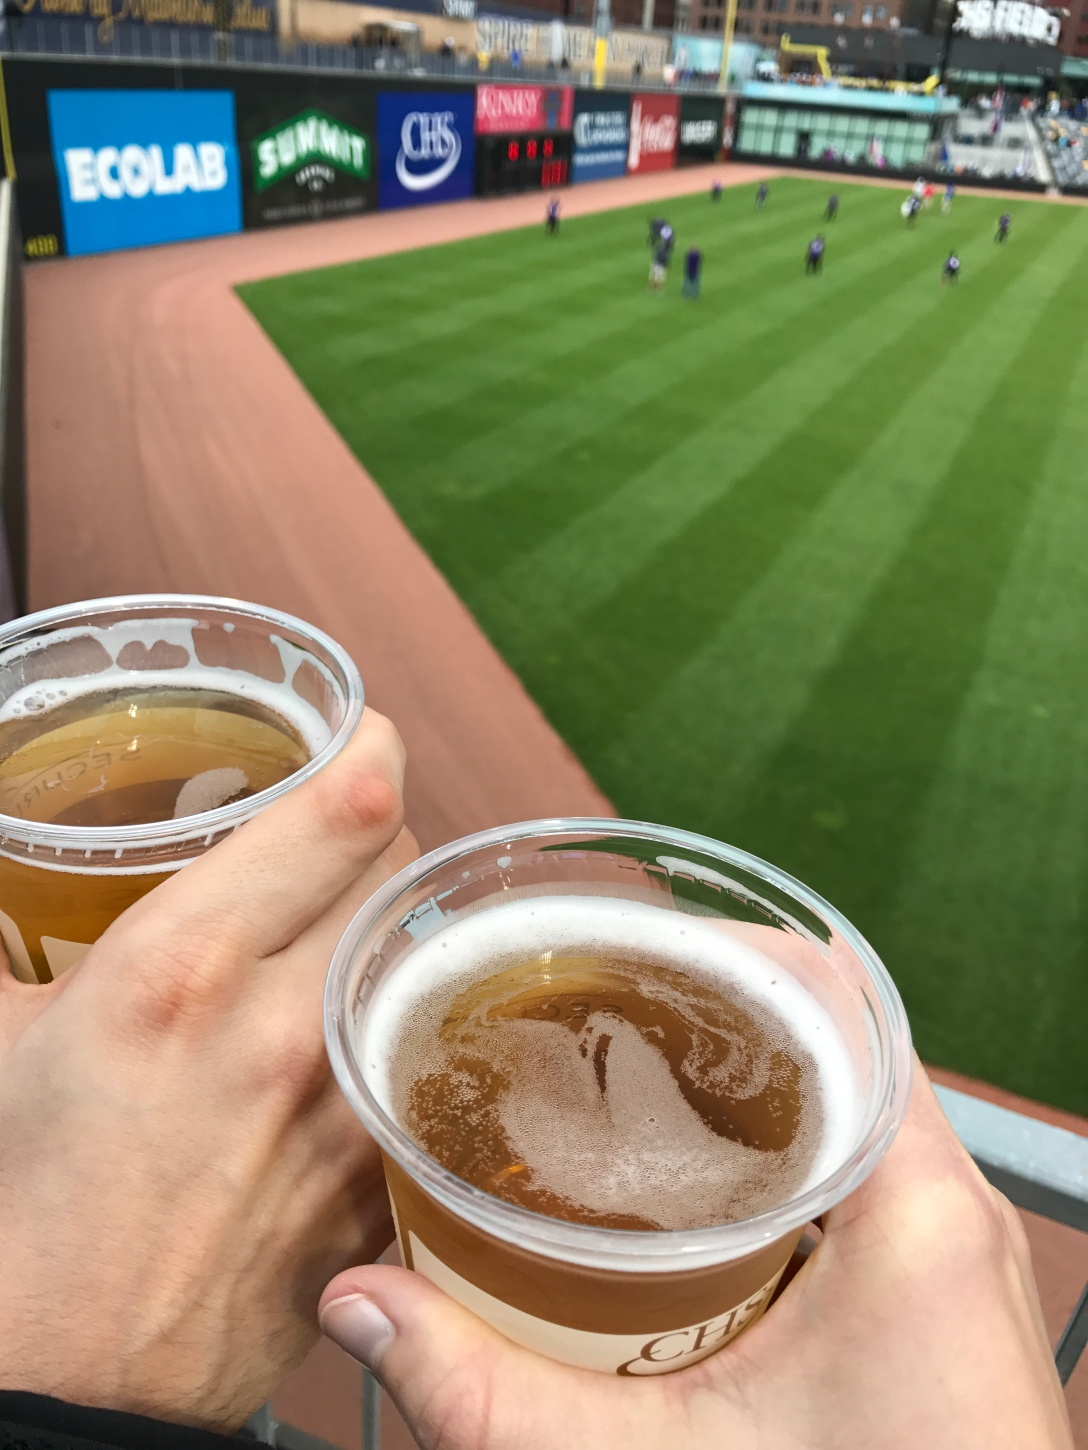 Thirsty Thursday at CHS Field at the St. Paul Saints game